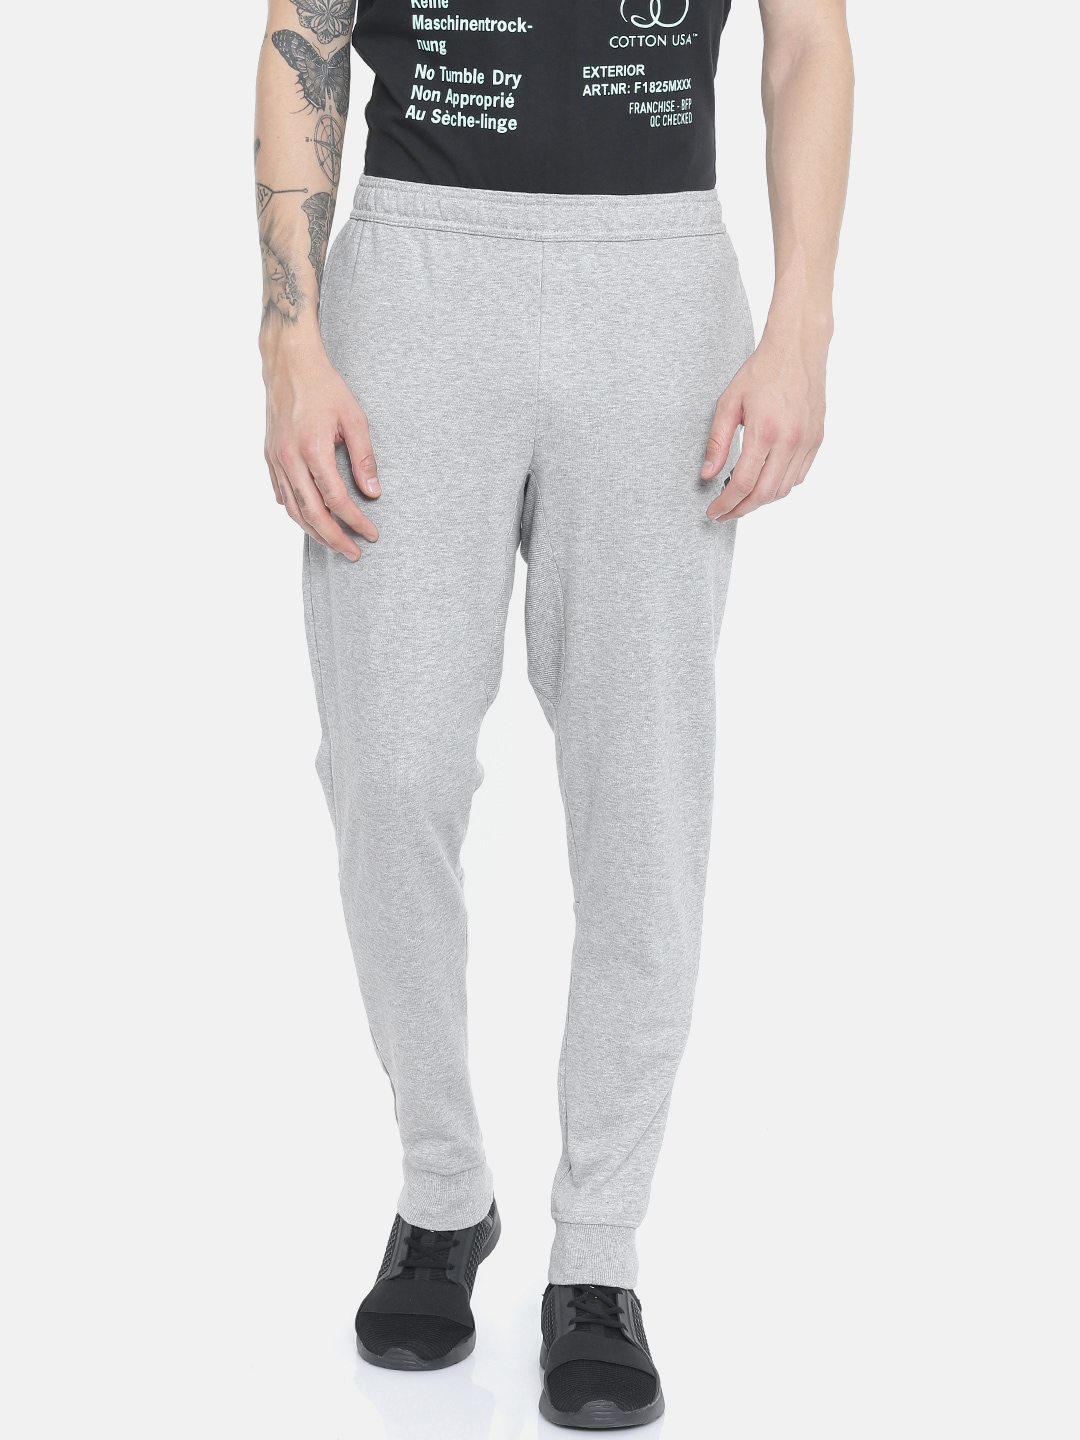 a0a634161 Adidas Men Capris Size Xs Track Pants Pants - Buy Adidas Men Capris Size Xs  Track Pants Pants online in India